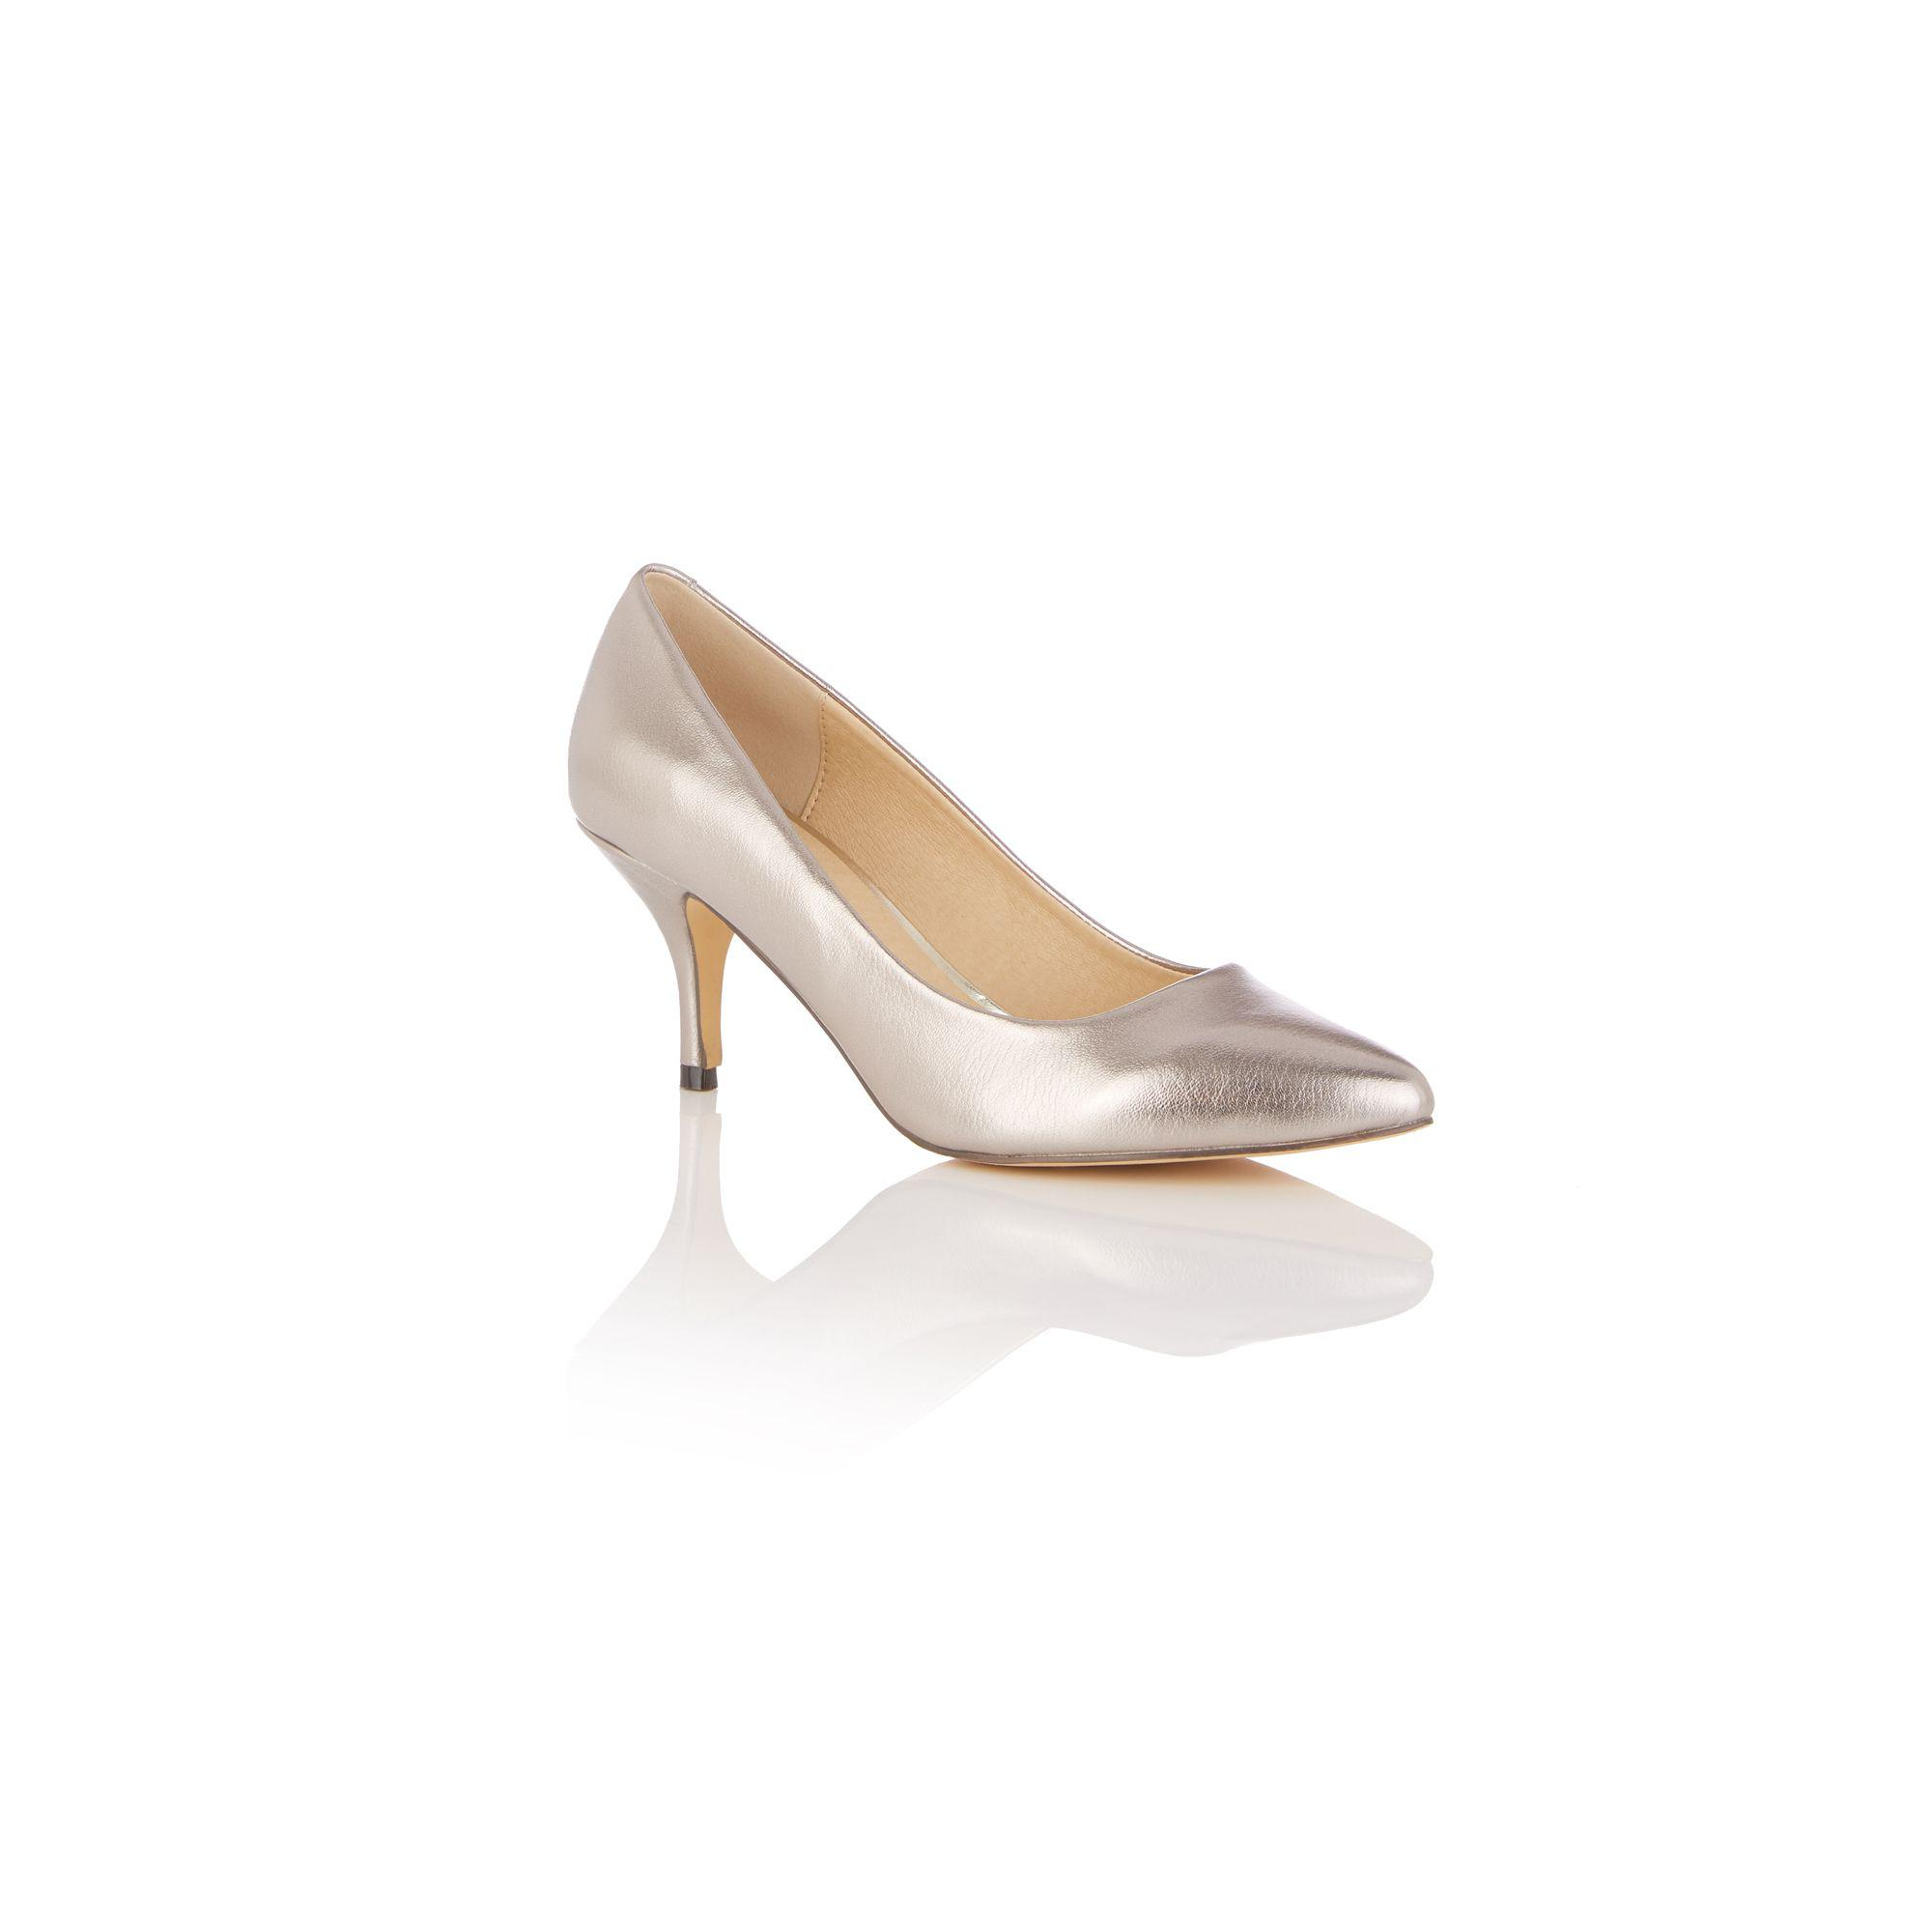 0d0366bce1f2 Oasis Pewter 'courtney' Court Shoes in Metallic - Lyst